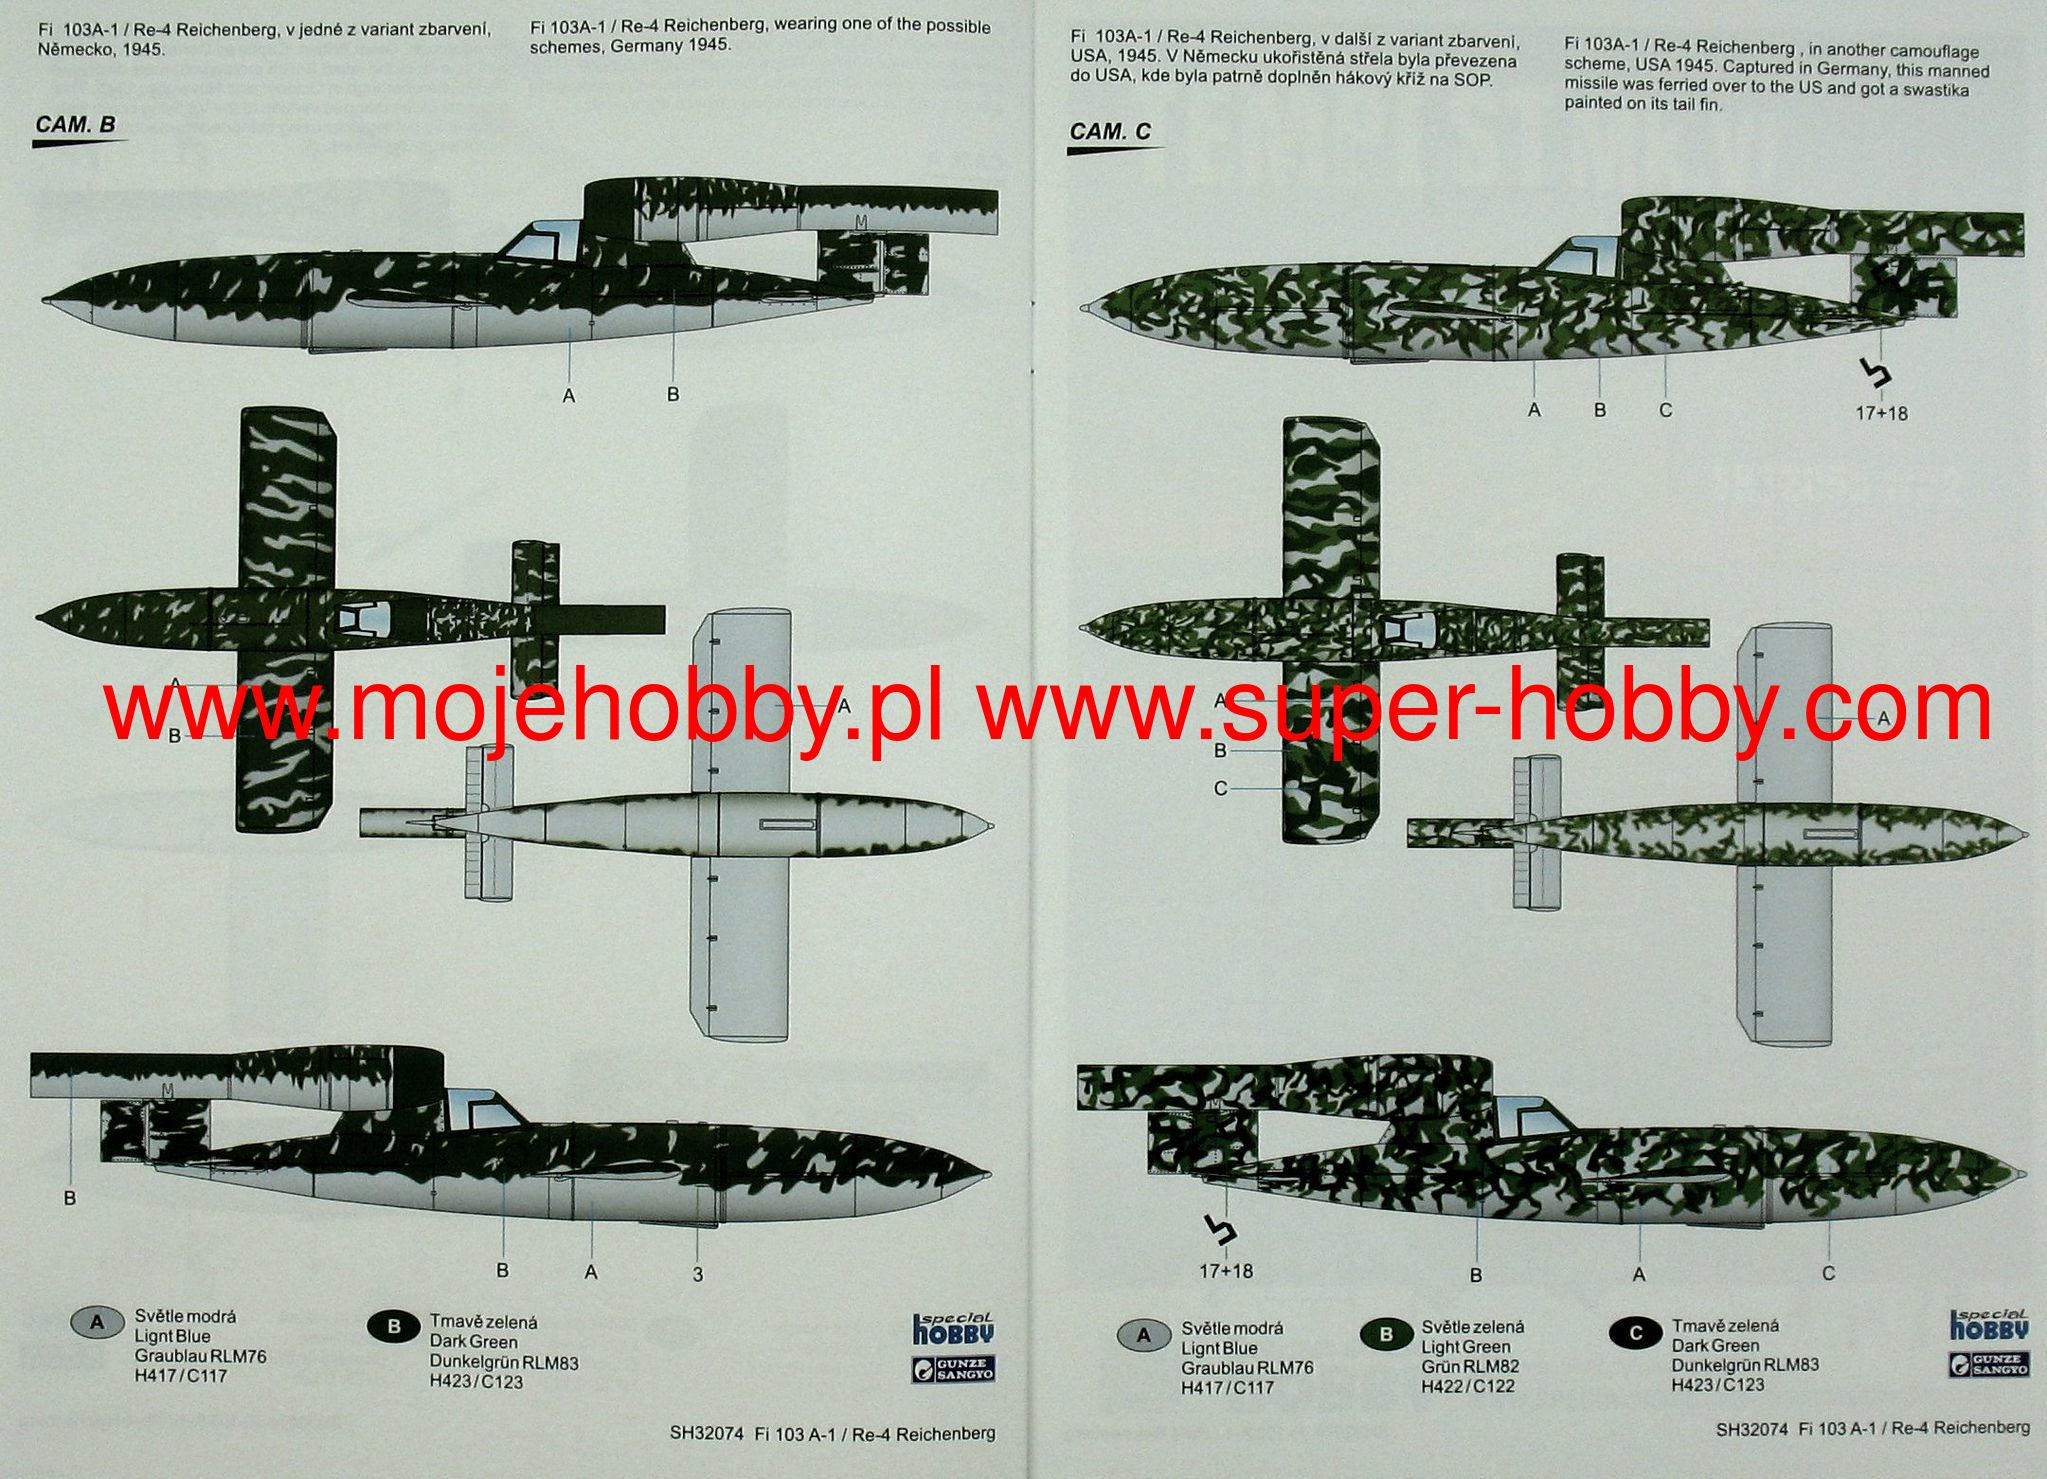 SPECIAL HOBBY 32074 Fieseler Fi 103A-1//Re 4 Reichenberg in 1:32